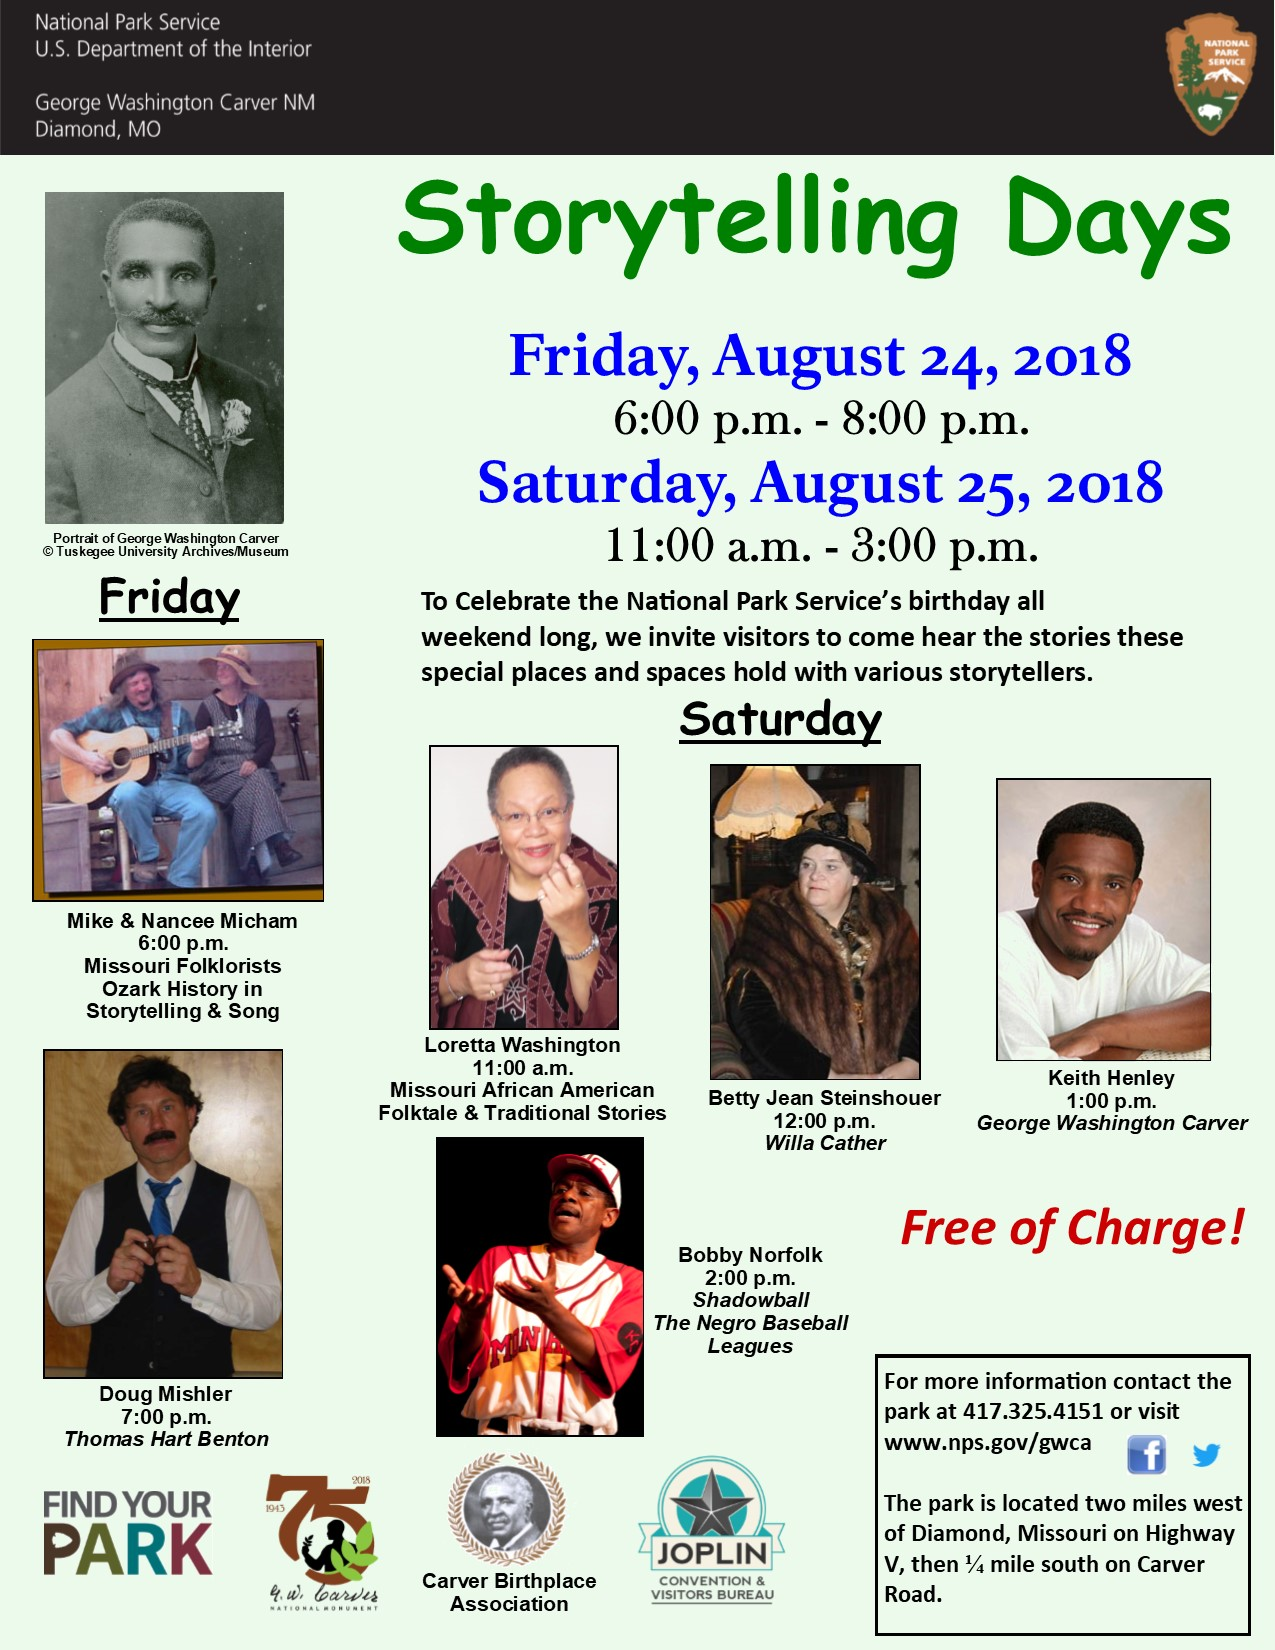 The photograph is for a special event at the park. The image includes a photo of George Washington Carver and 6 pictures of storytellers. There is also informational text and logos for the event.